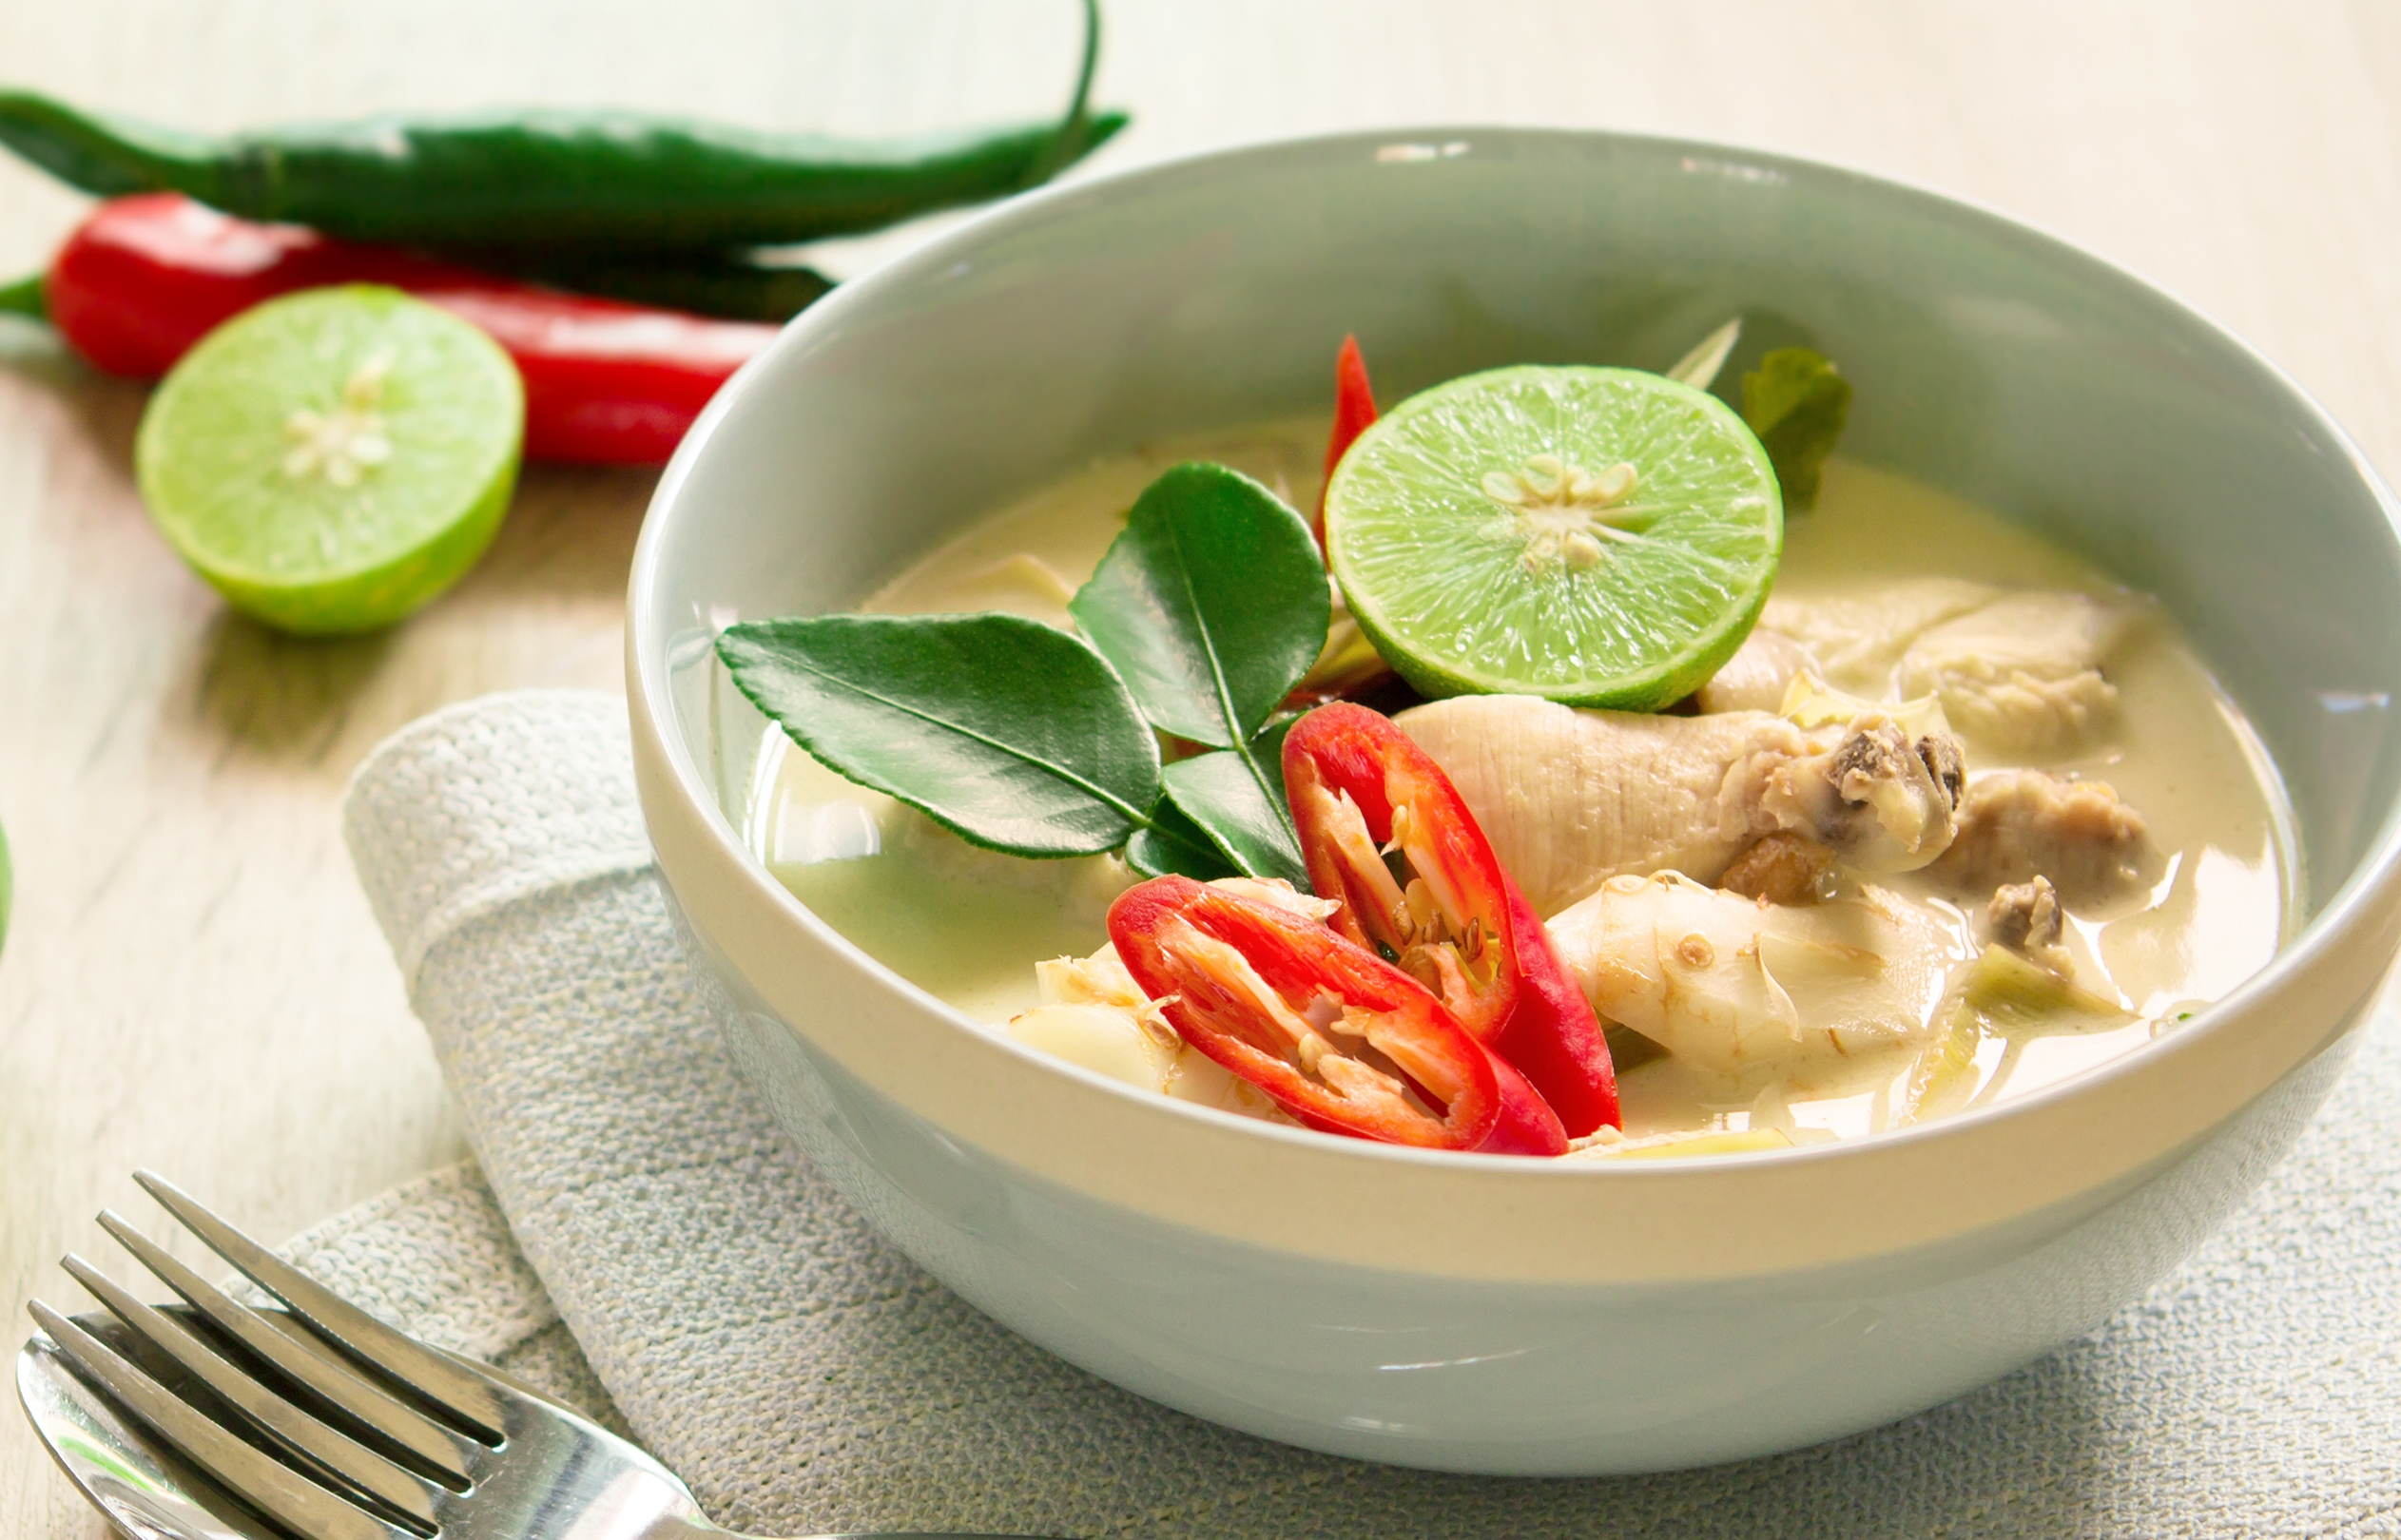 Does Thai Food Contain Msg